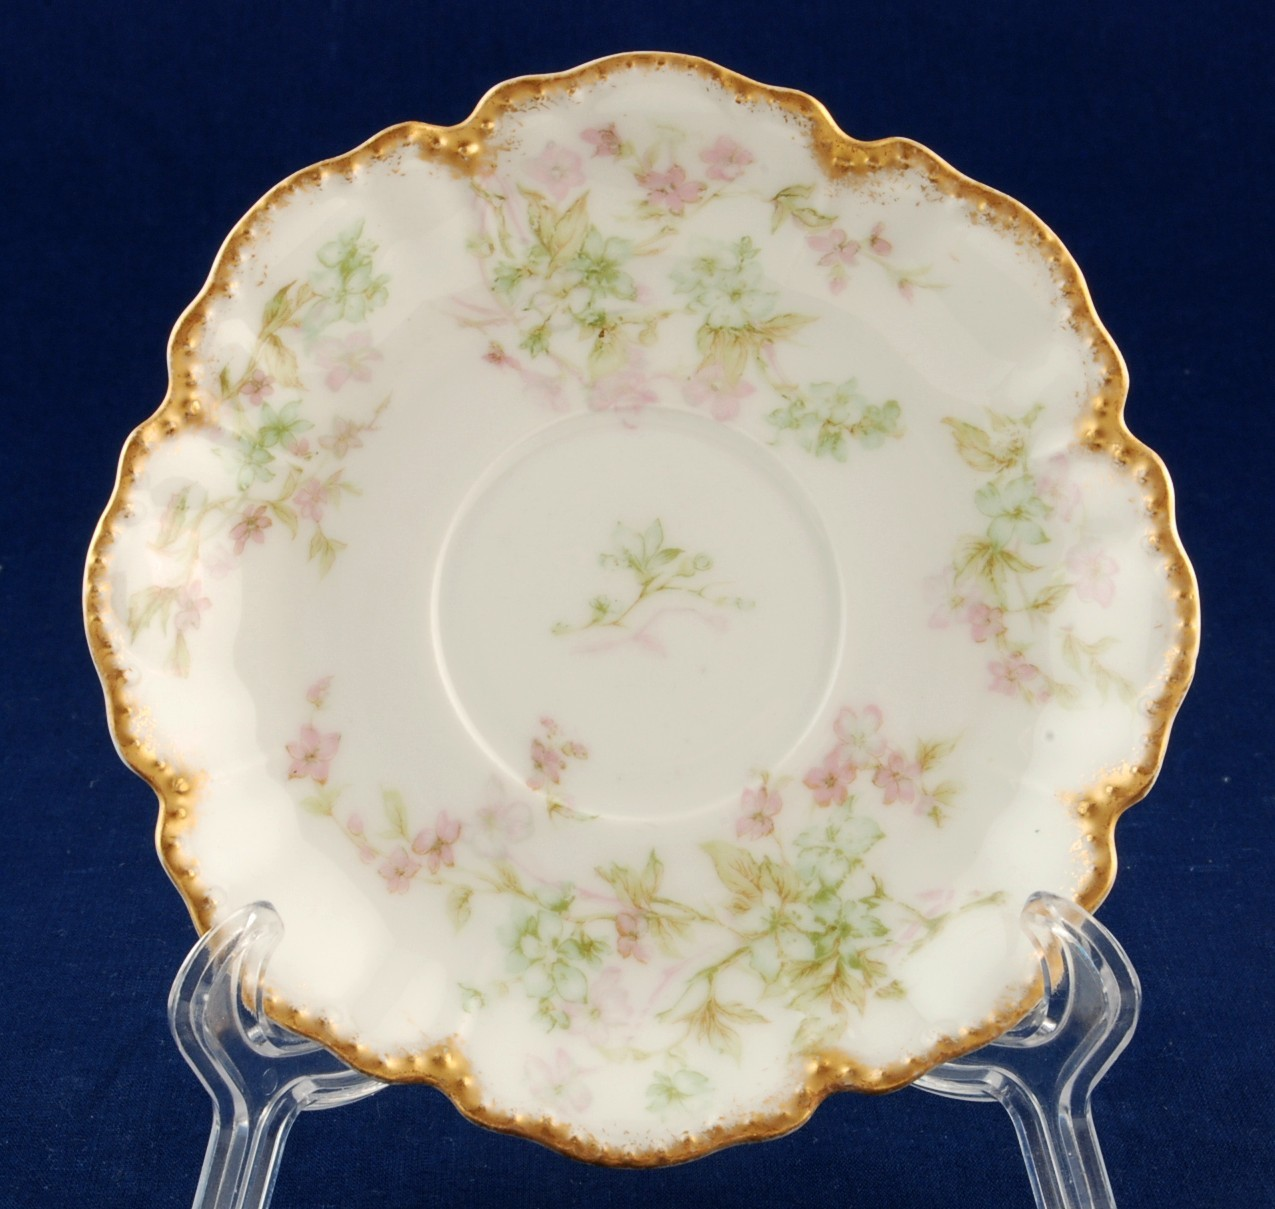 Limoges saucer for chocolate cup